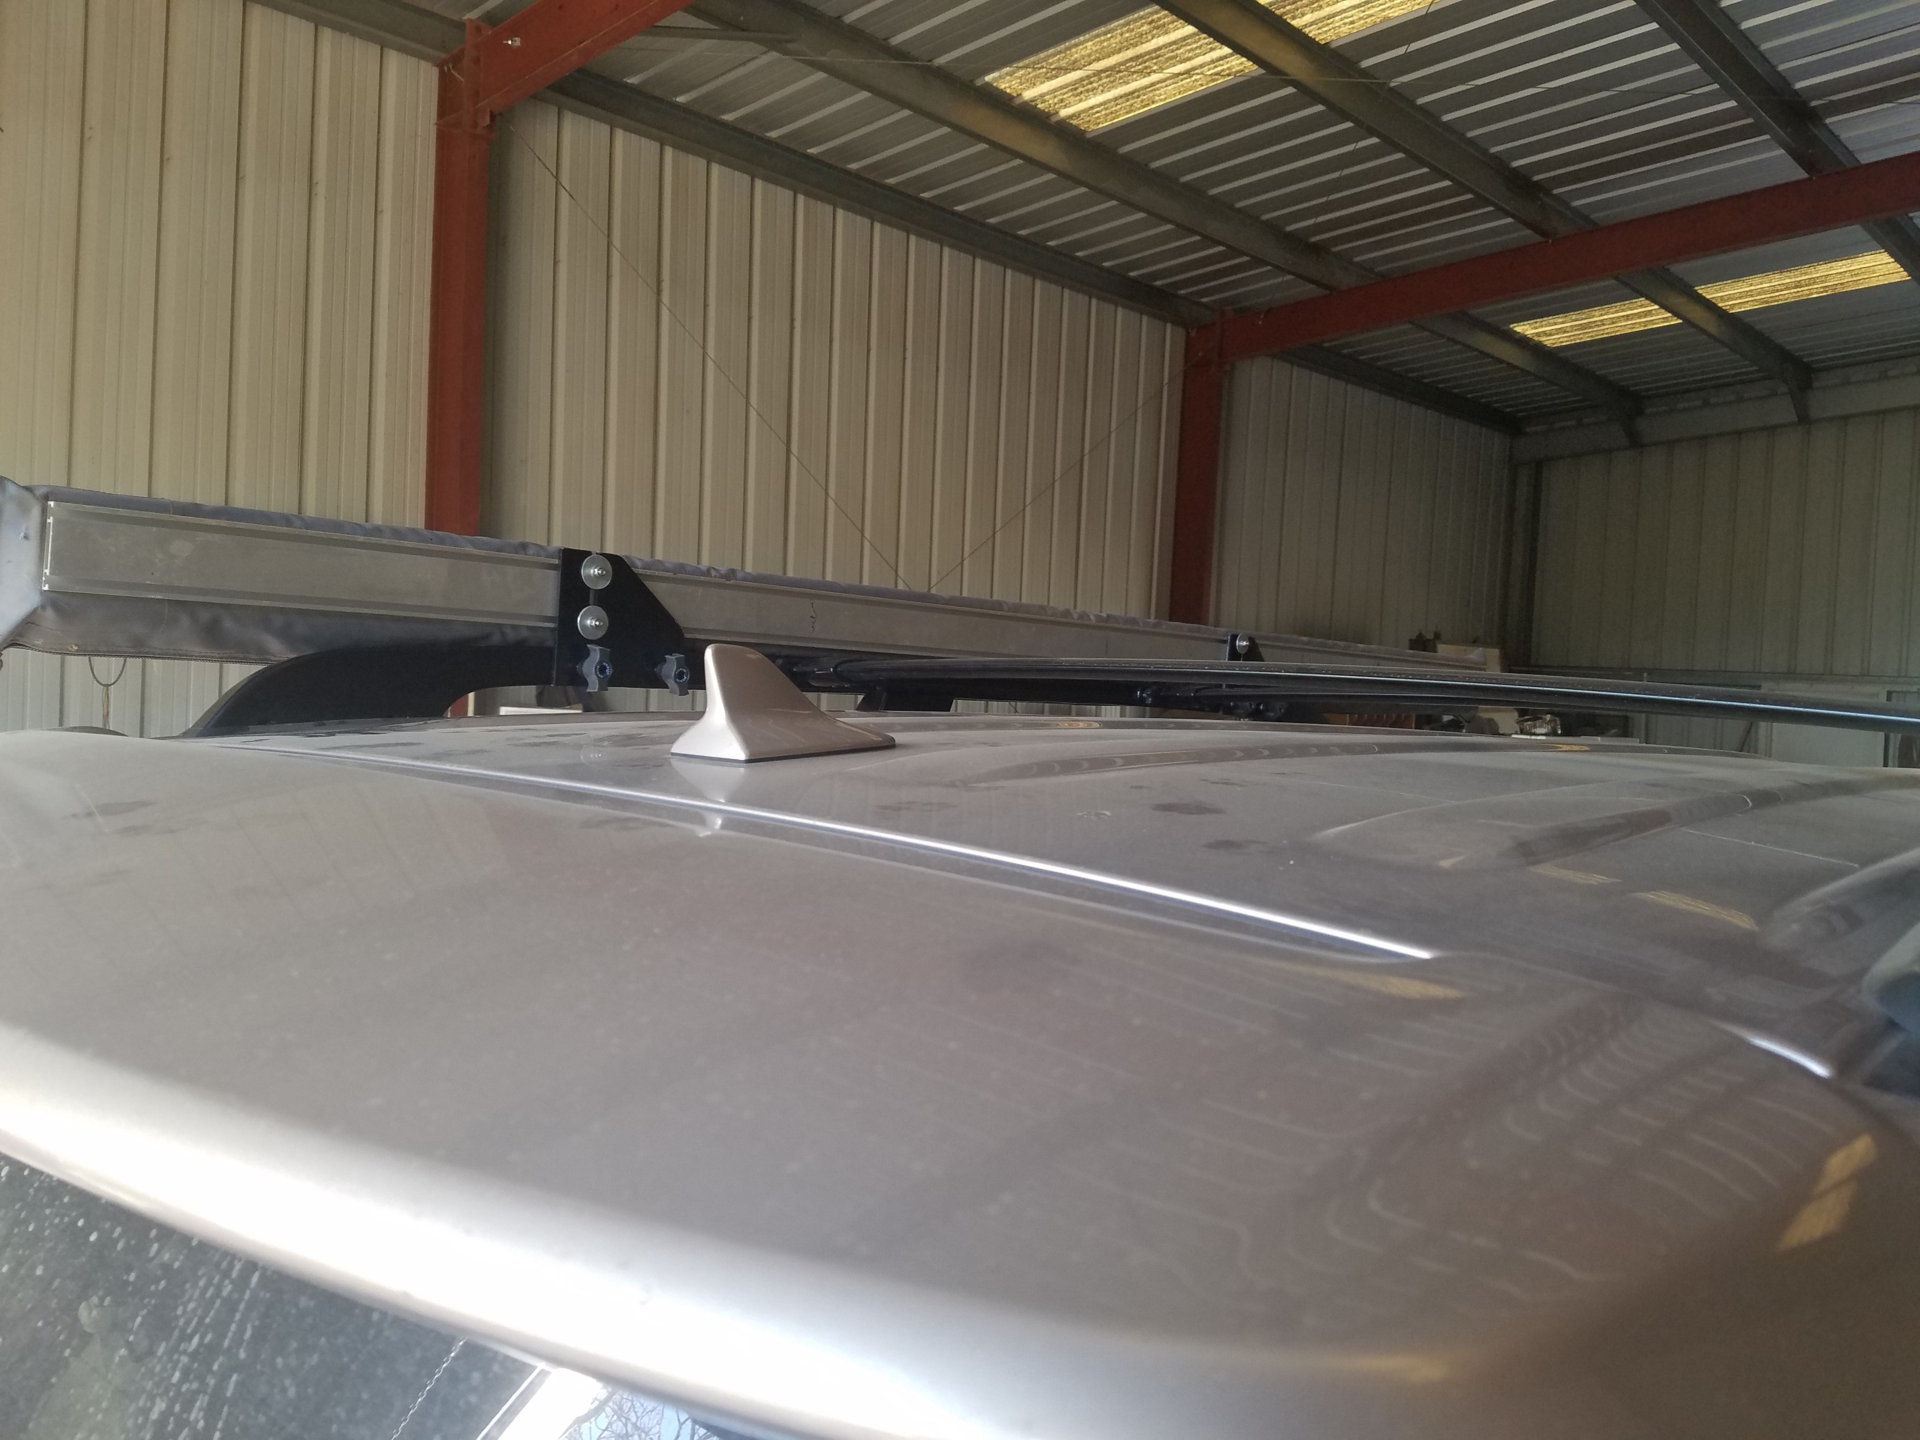 Anyone Mount Arb 2500 Awning To Stock Roof Rack Page 3